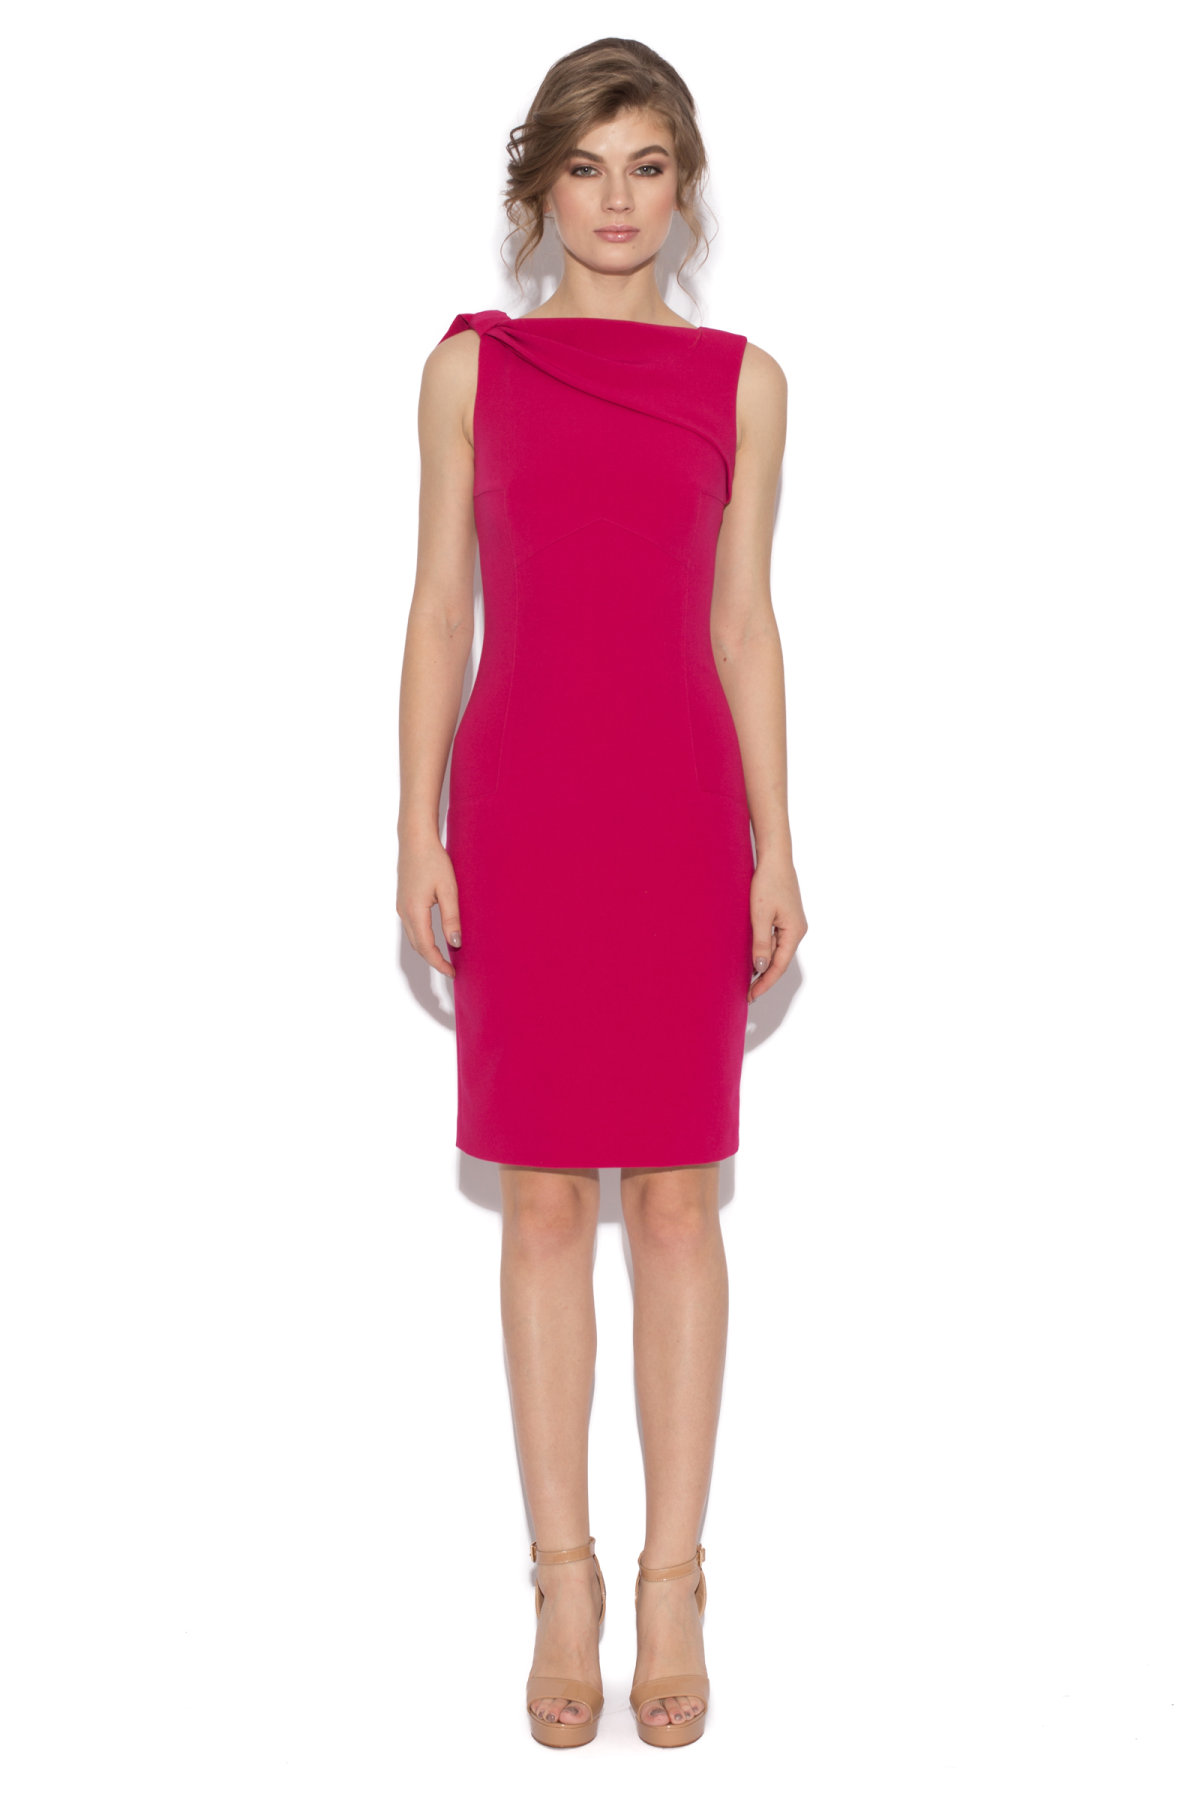 Fitted burgundy cocktail dress | RC9335 | NISSA